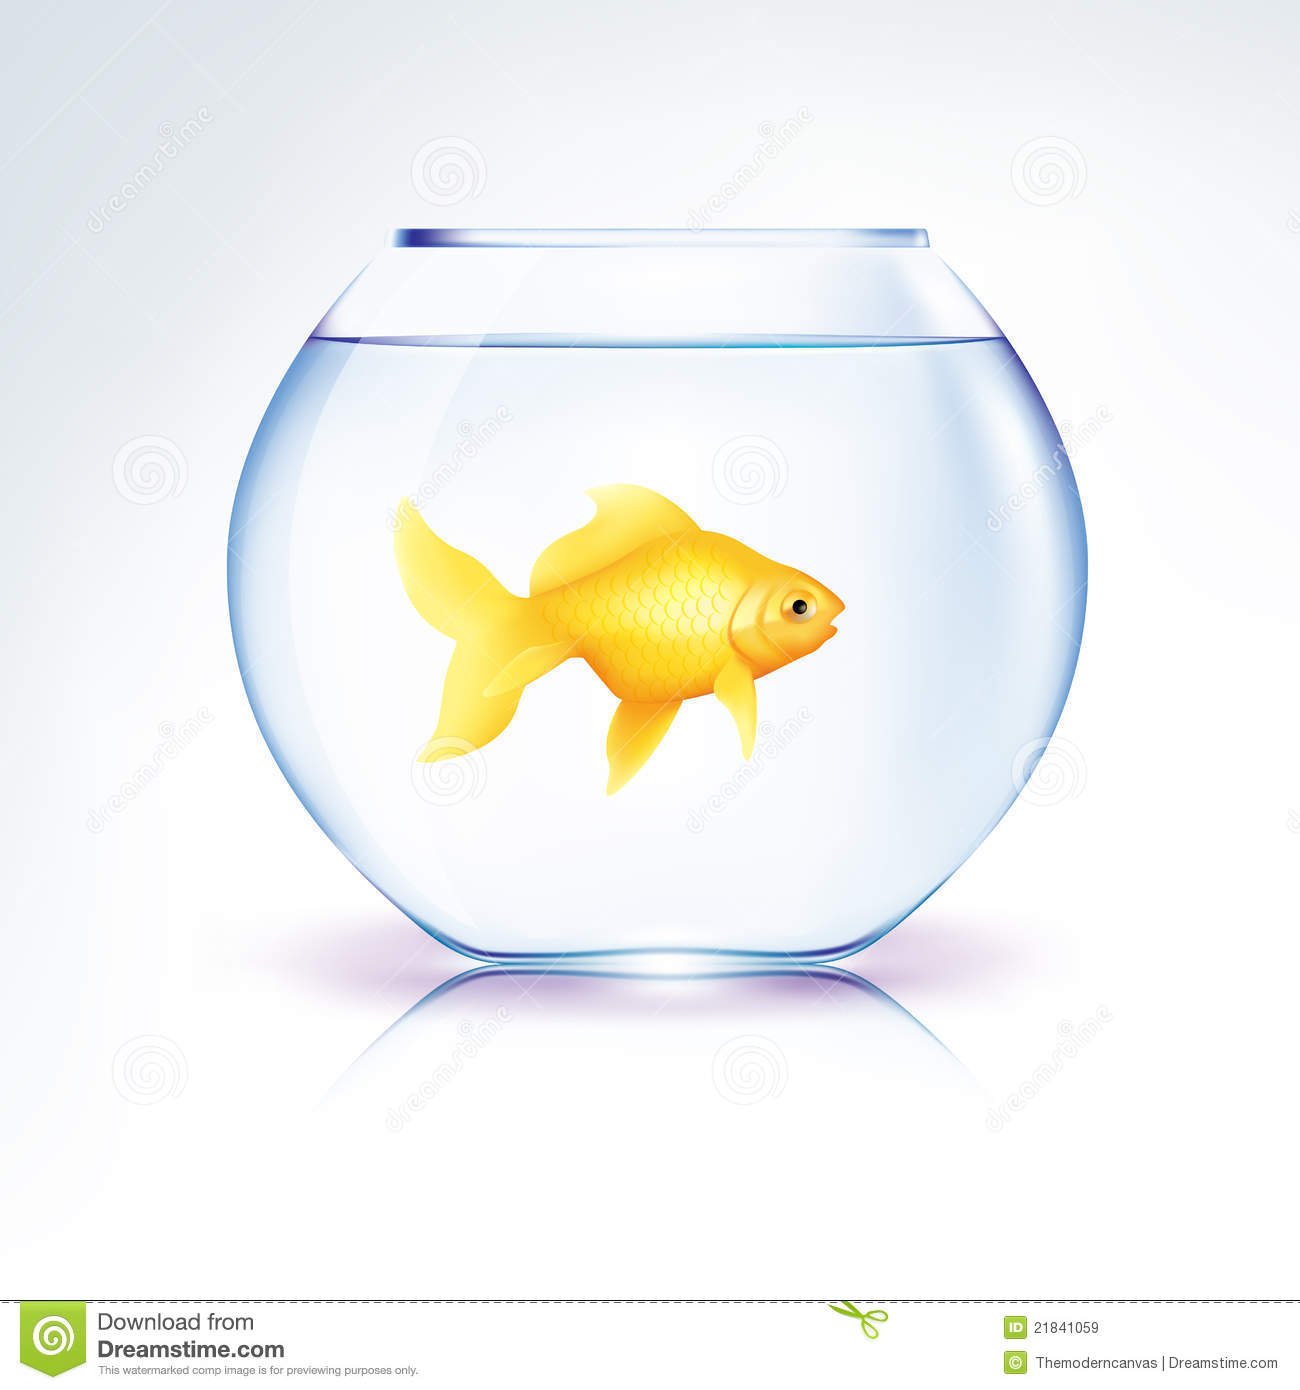 Royalty Free Stock Images: Gold Fish in a bowl